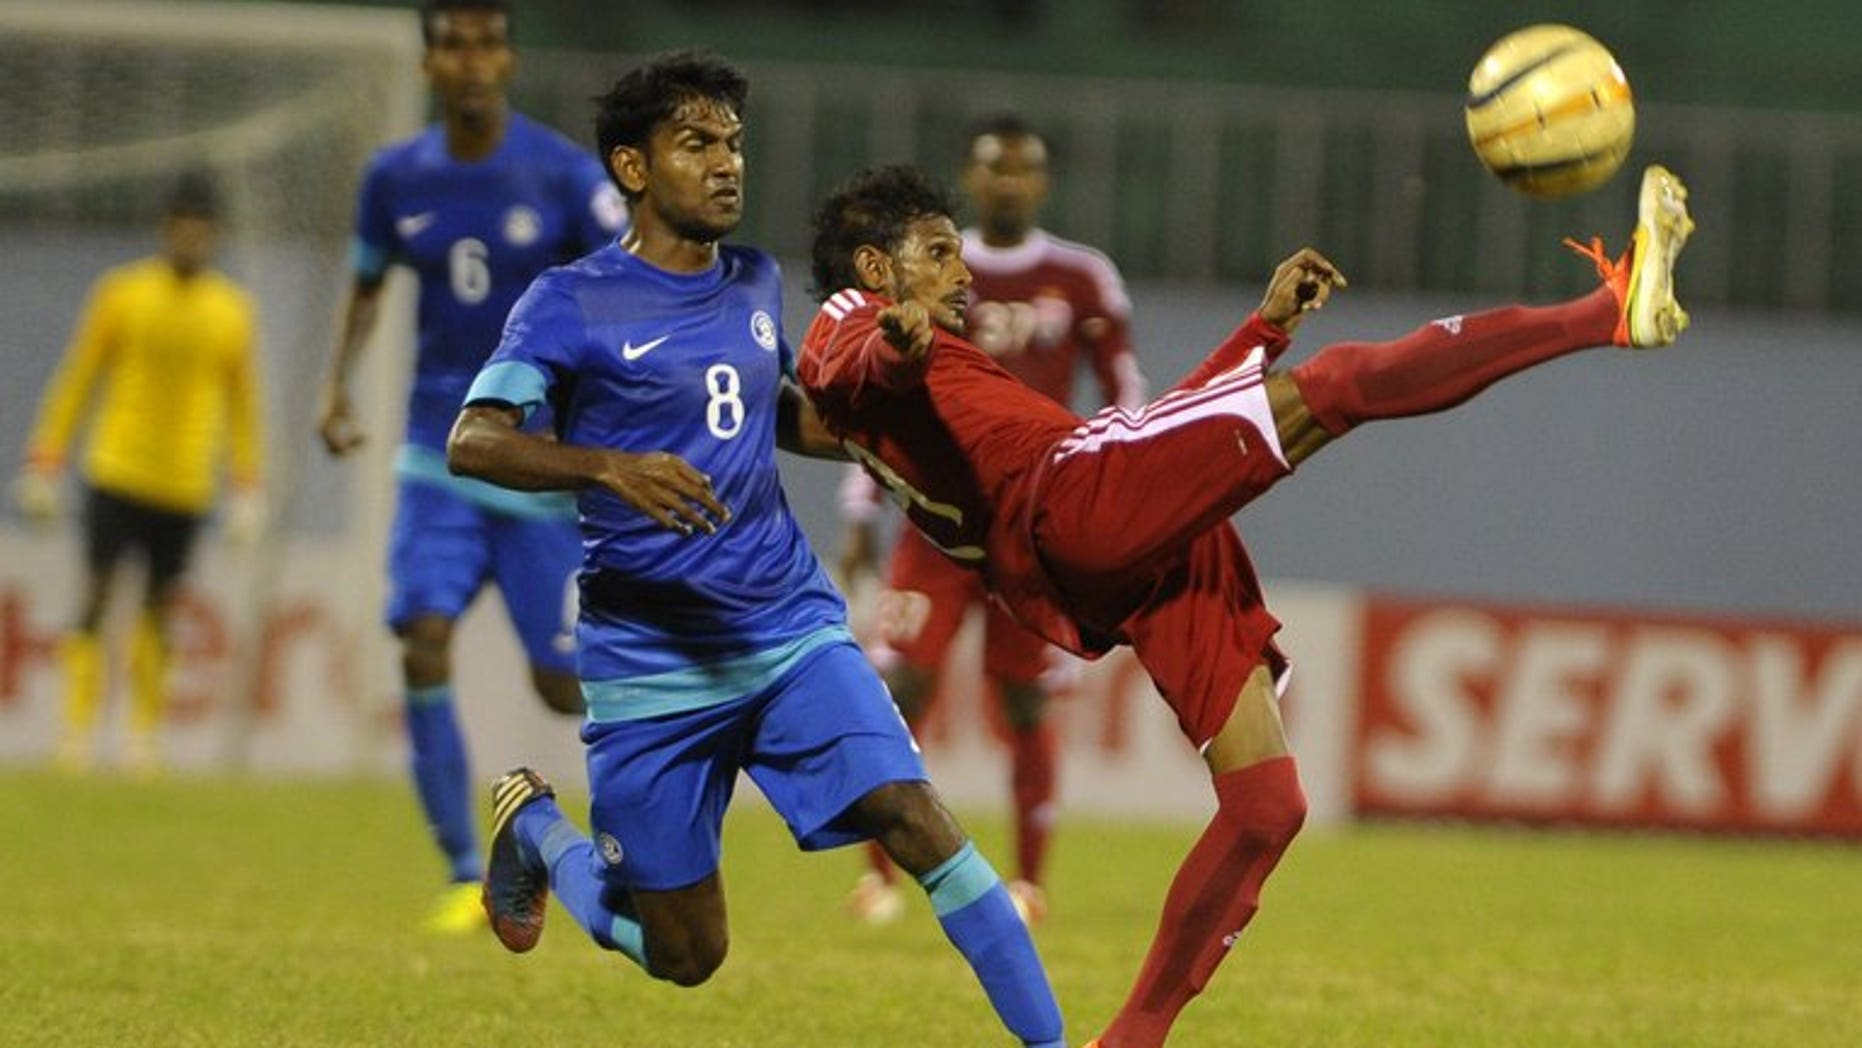 India's Francisco Fernandens (left) vies with Maldives' Akram abul Gani (right) during their SAFF Championships semi-final football match in Kathmandu on September 9, 2013. India won 1-0. The Maldives' football coach has blamed a disputed penalty decision for flared tempers after his team's 1-0 loss to India which saw a player assault the referee and the police called in to restore calm.